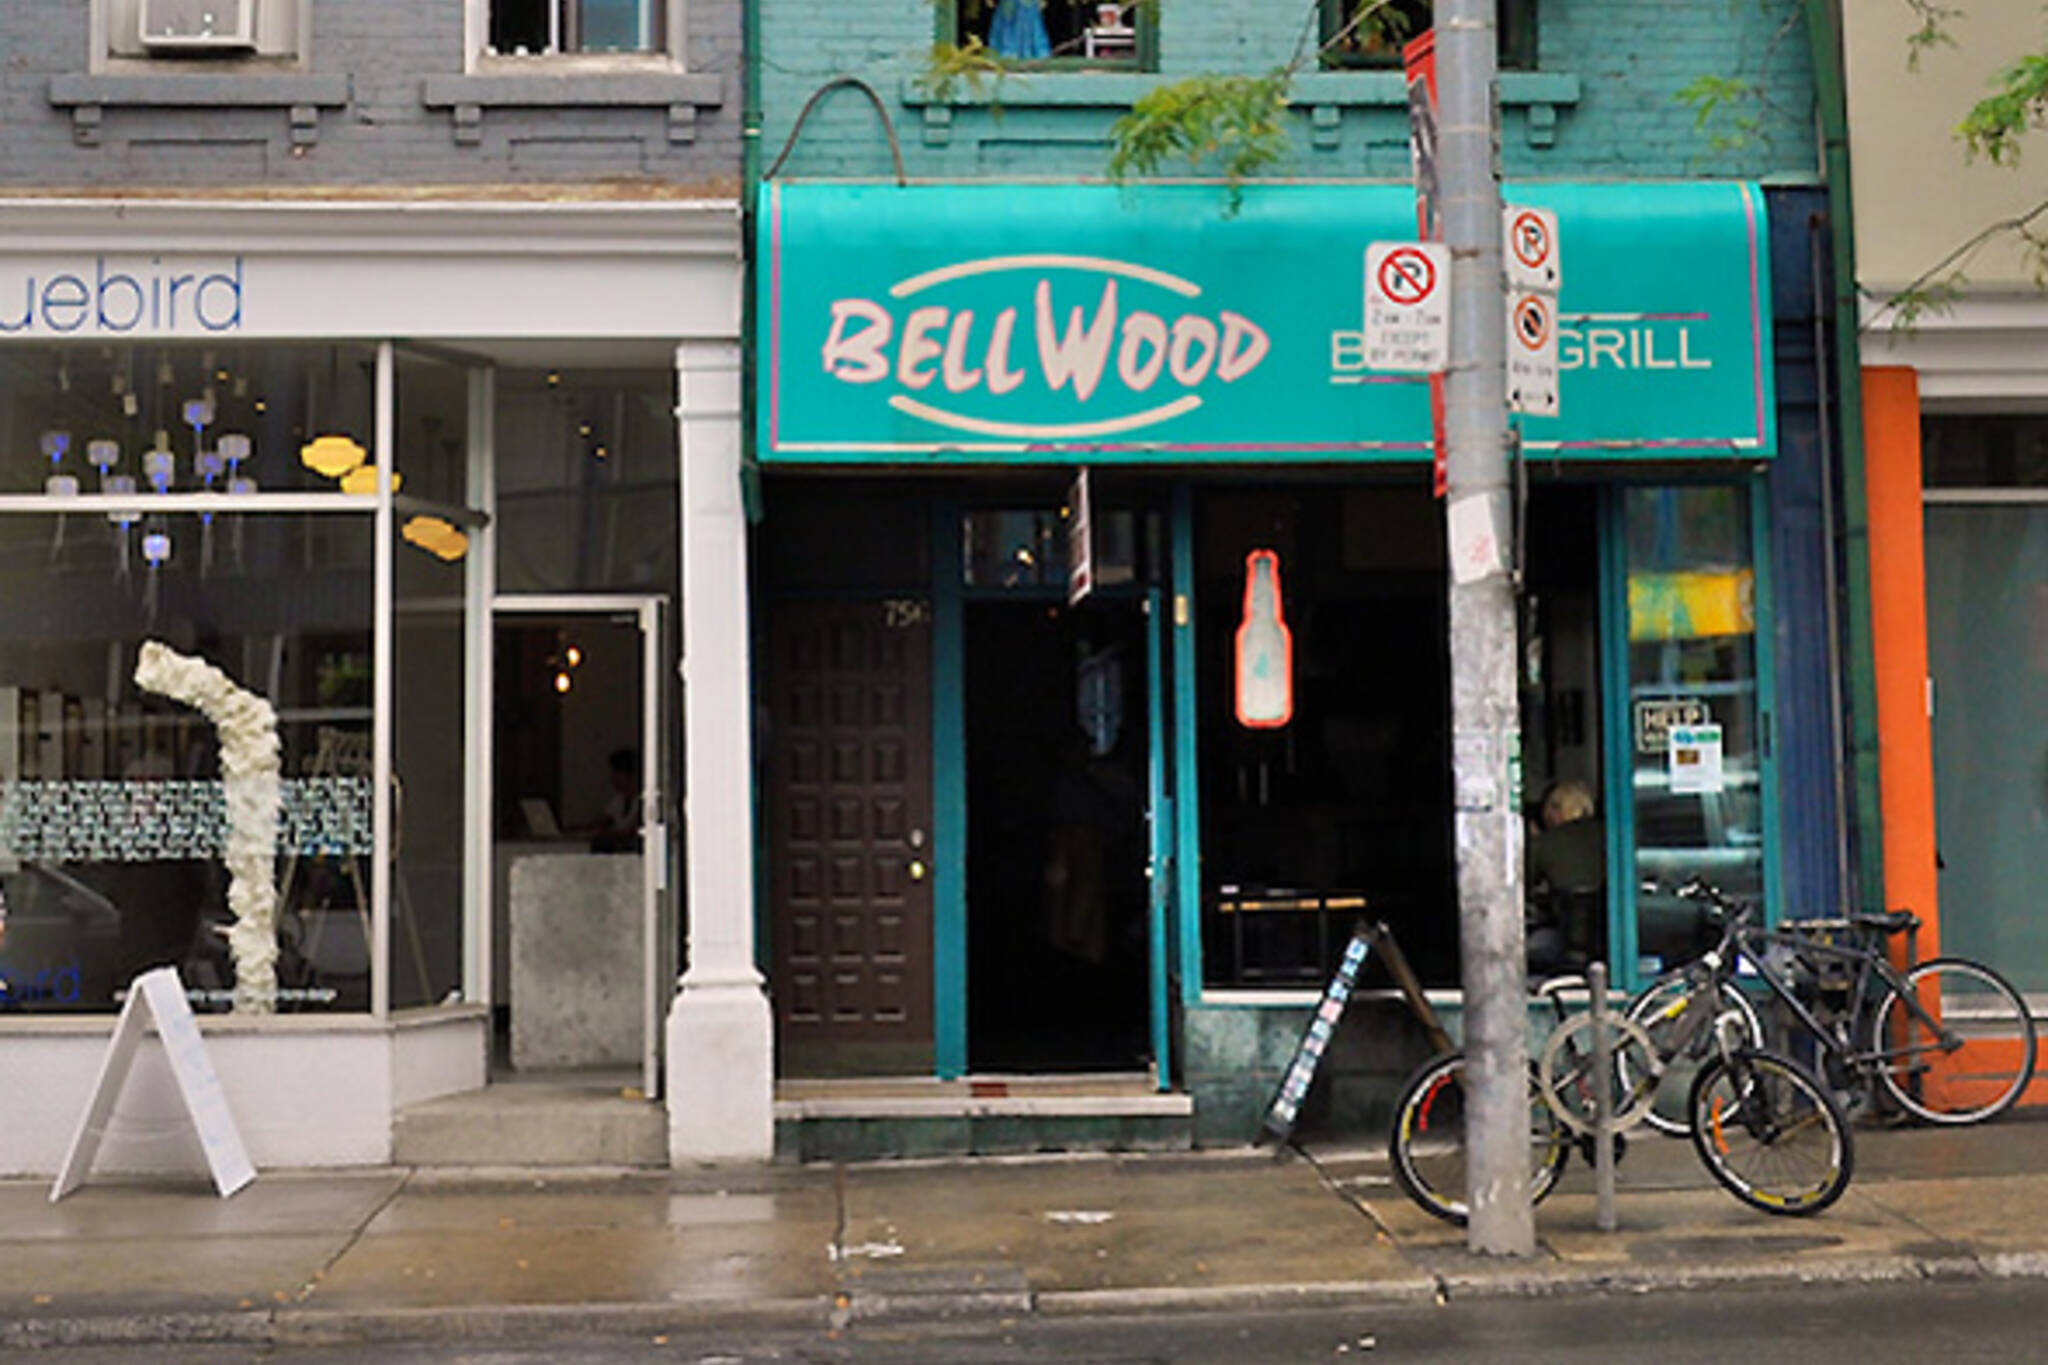 Bellwood Bar and Grill